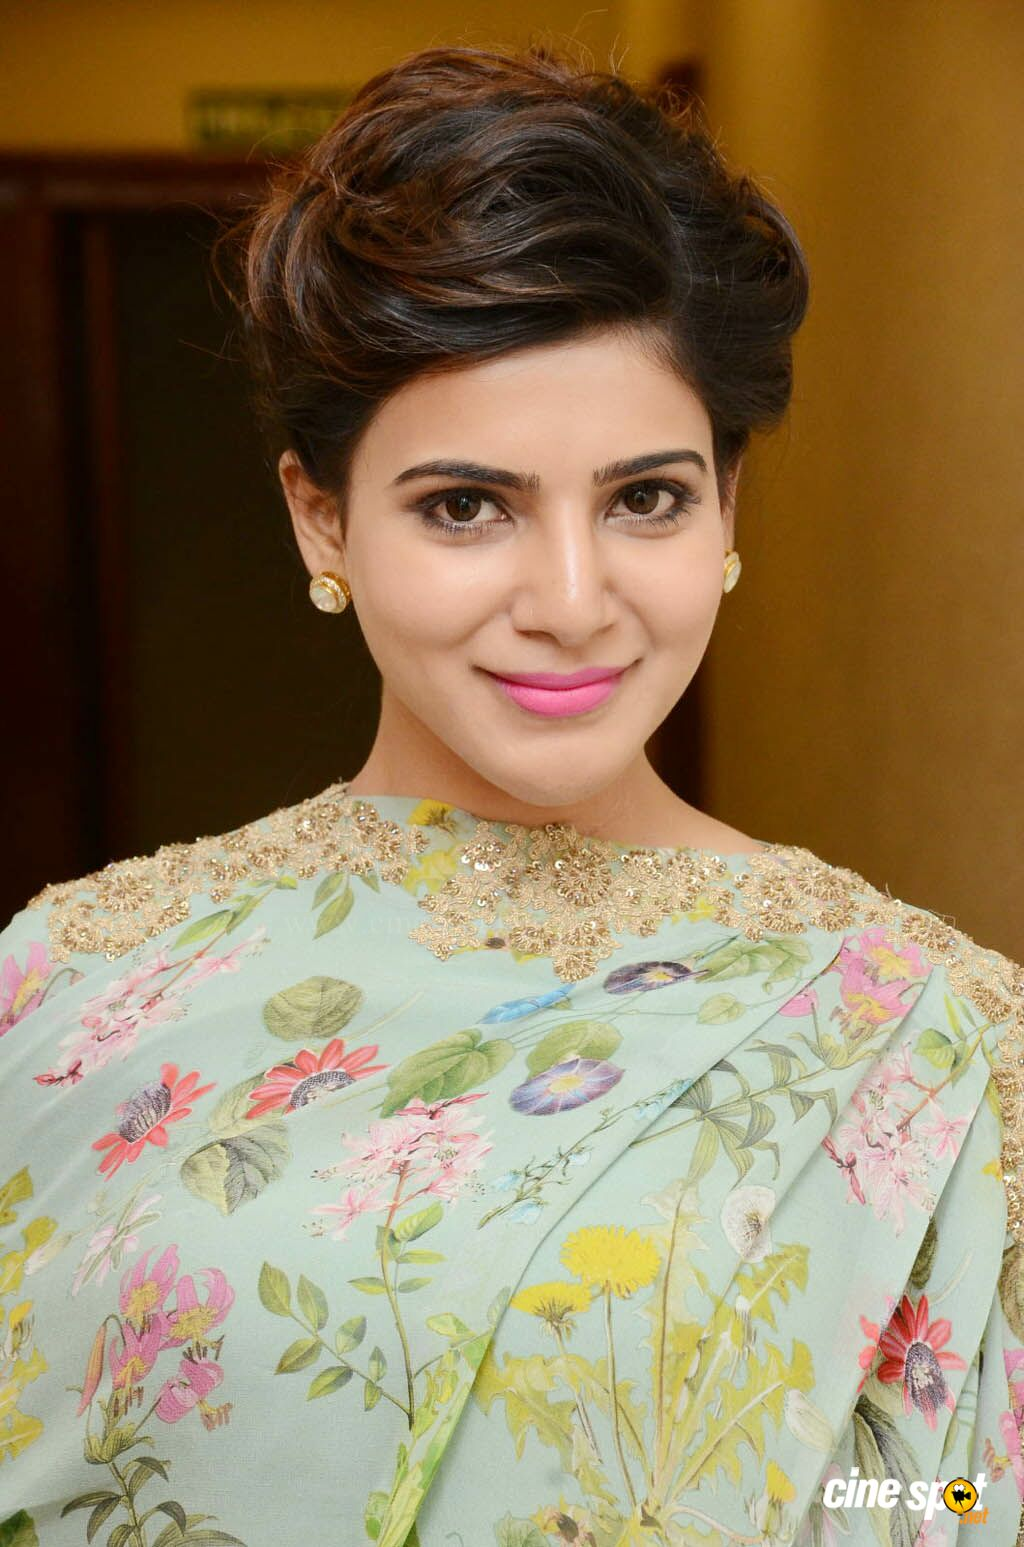 samantha ruth prabhu 18 beautiful images in high quality - indian